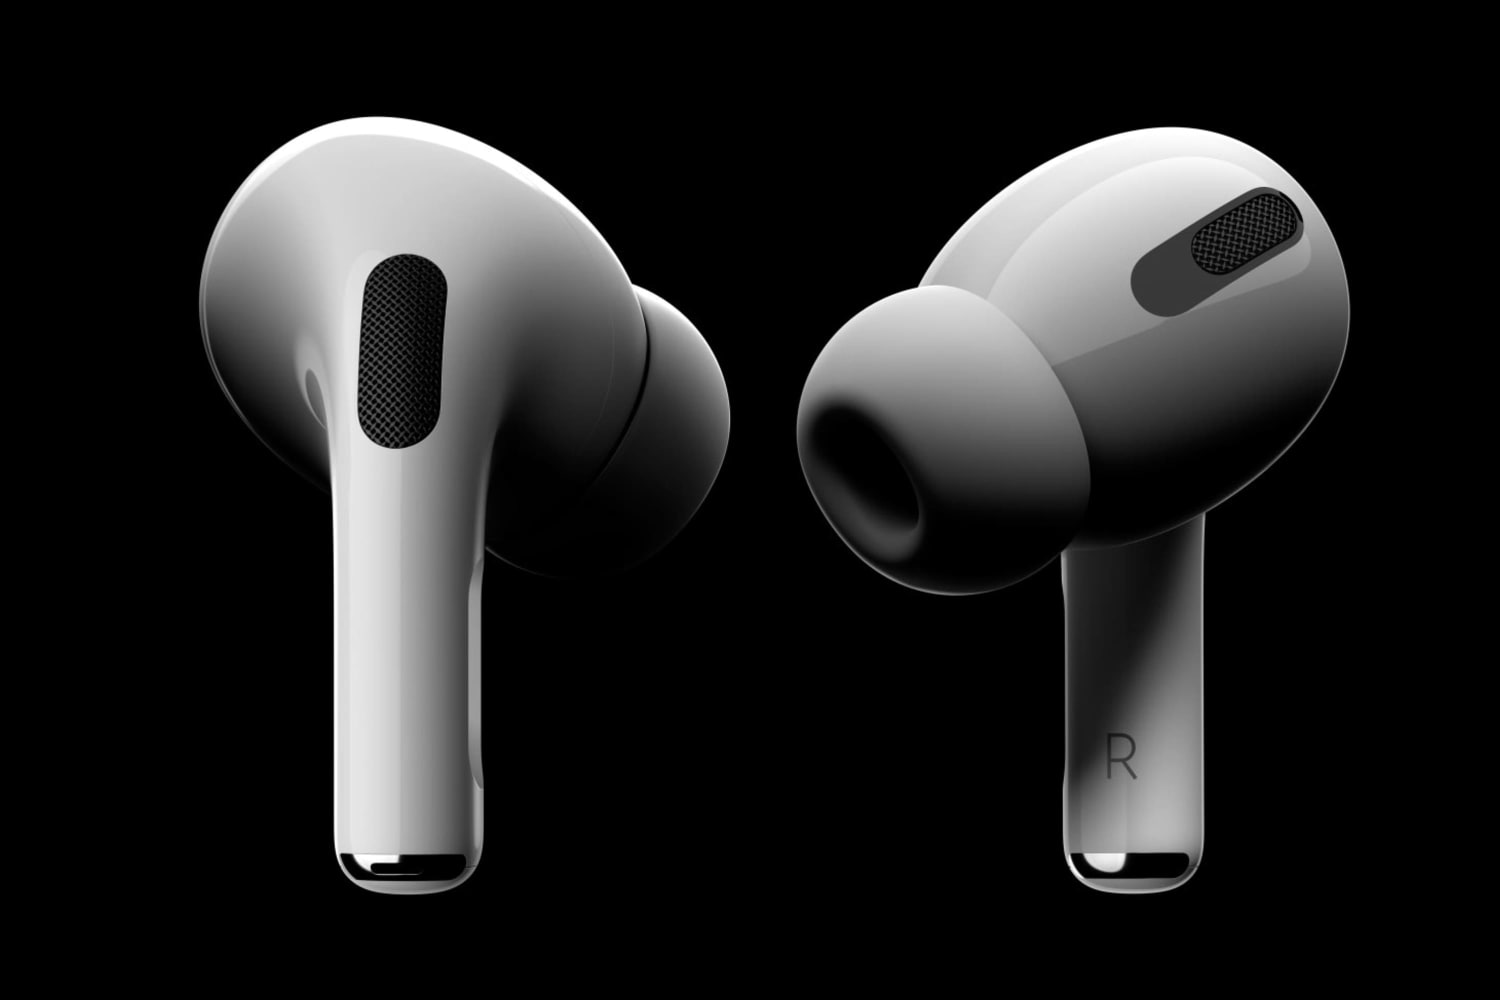 apple-to-release-new-airpods-models-and-2nd-gen-airpods-pro-20201102-2